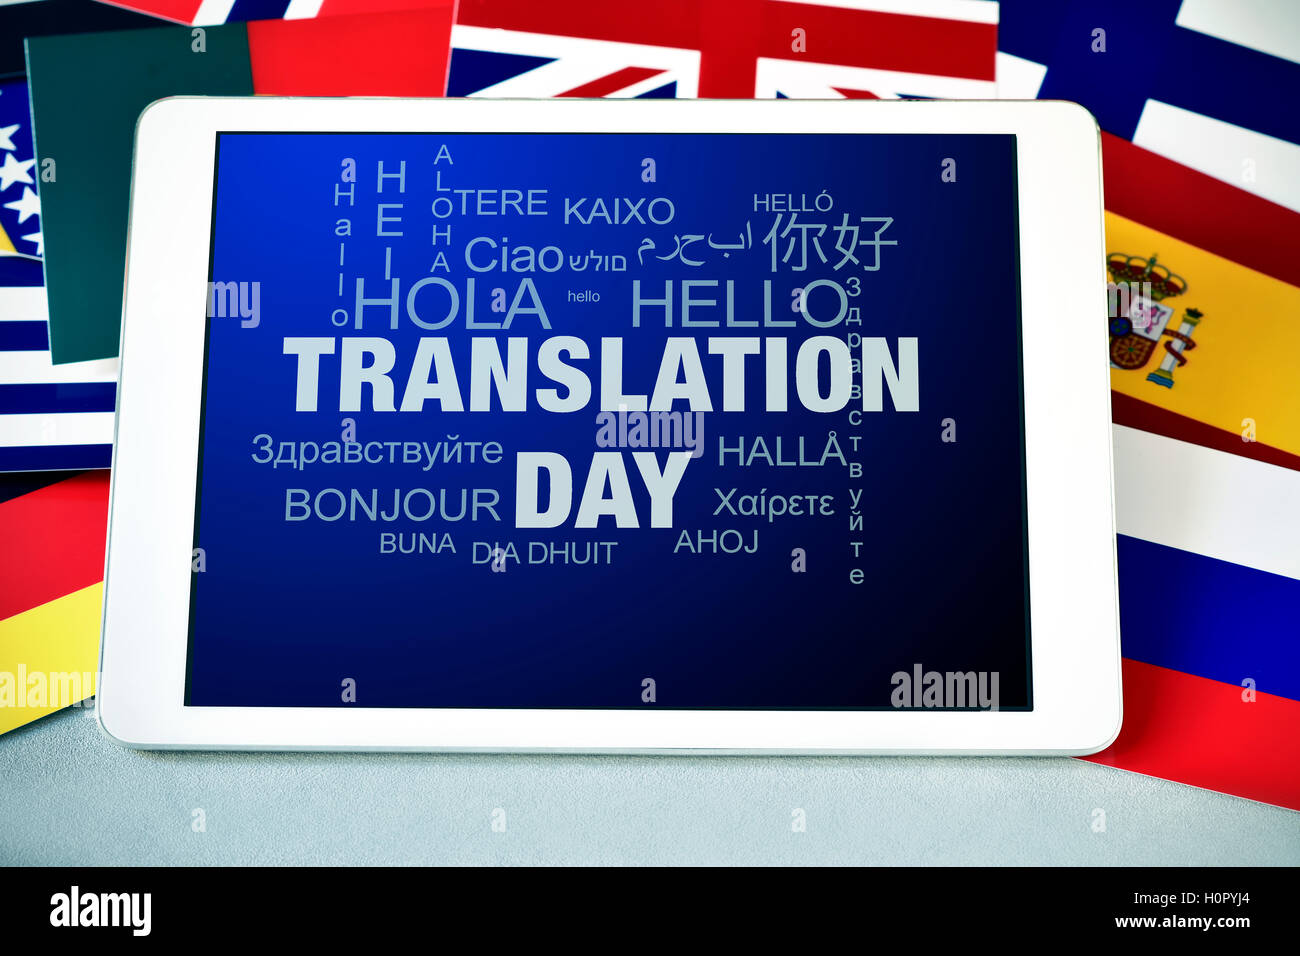 the text Translation Day in the screen of a tablet computer, and the word hello in different languages, surrounded - Stock Image